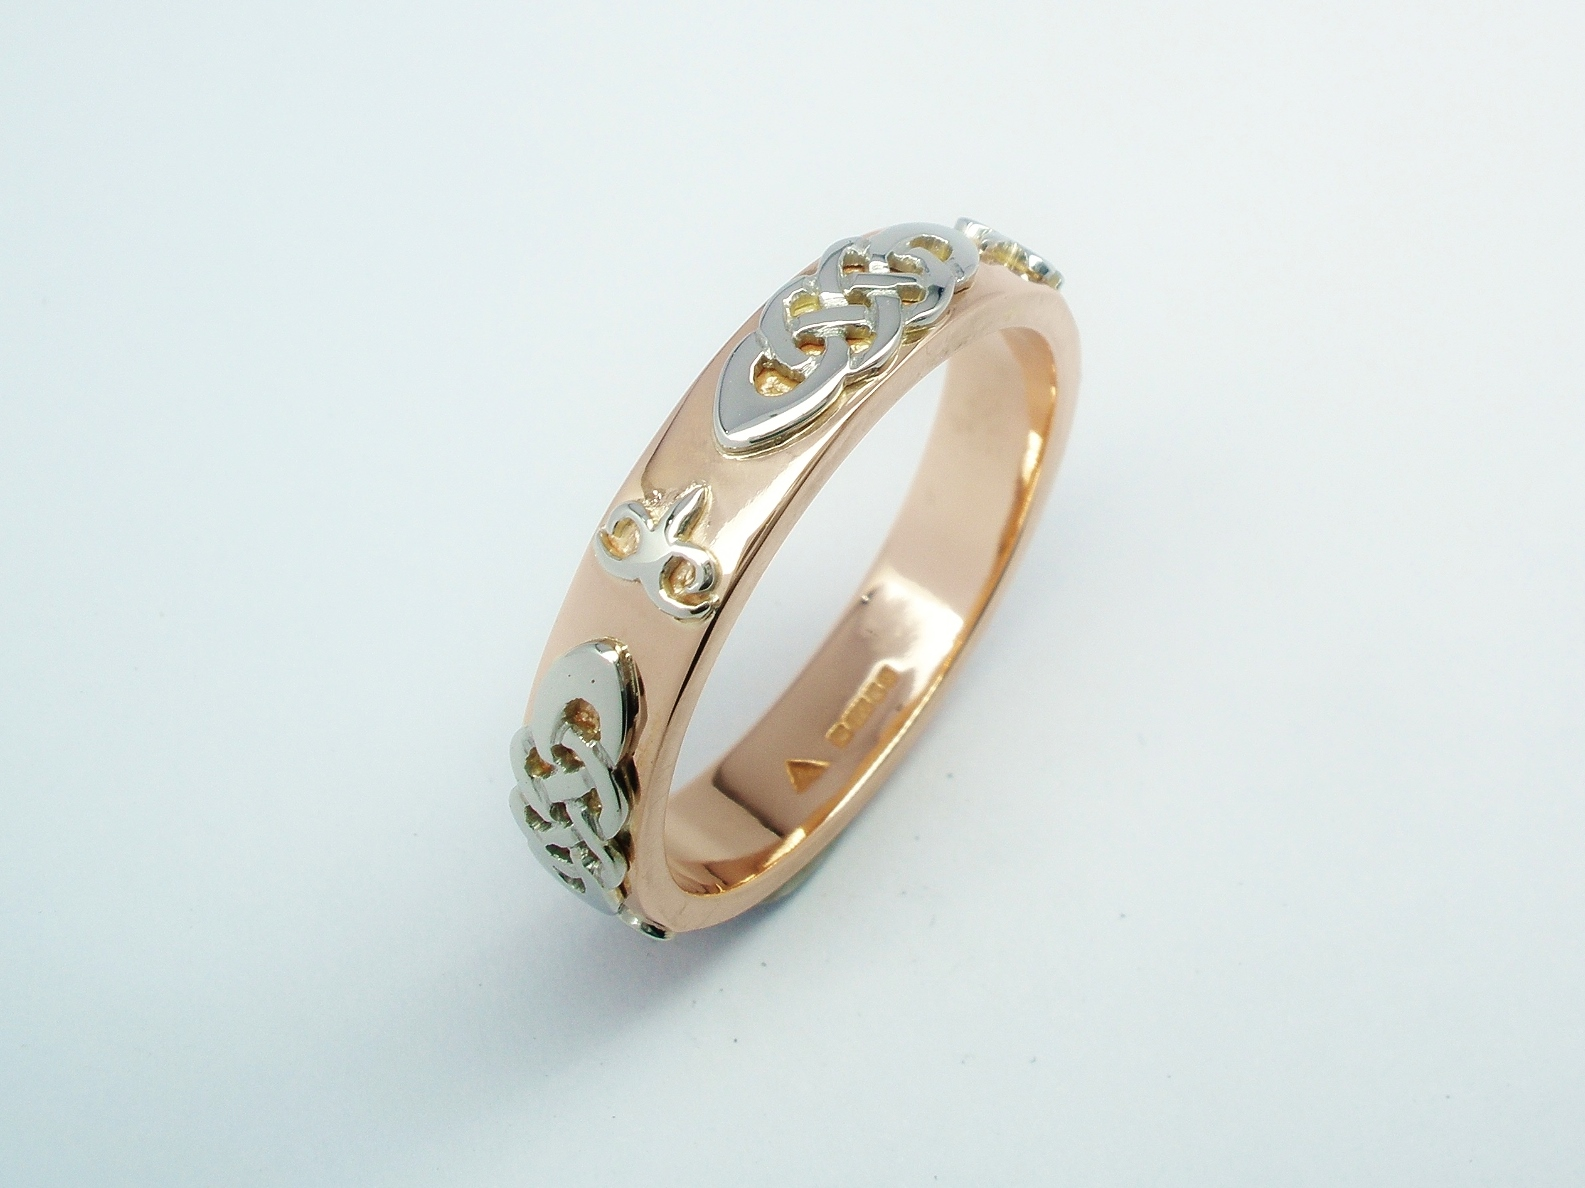 A red gold gent's wedding ring with platinum Celtic and Kazakh style motif overlays.